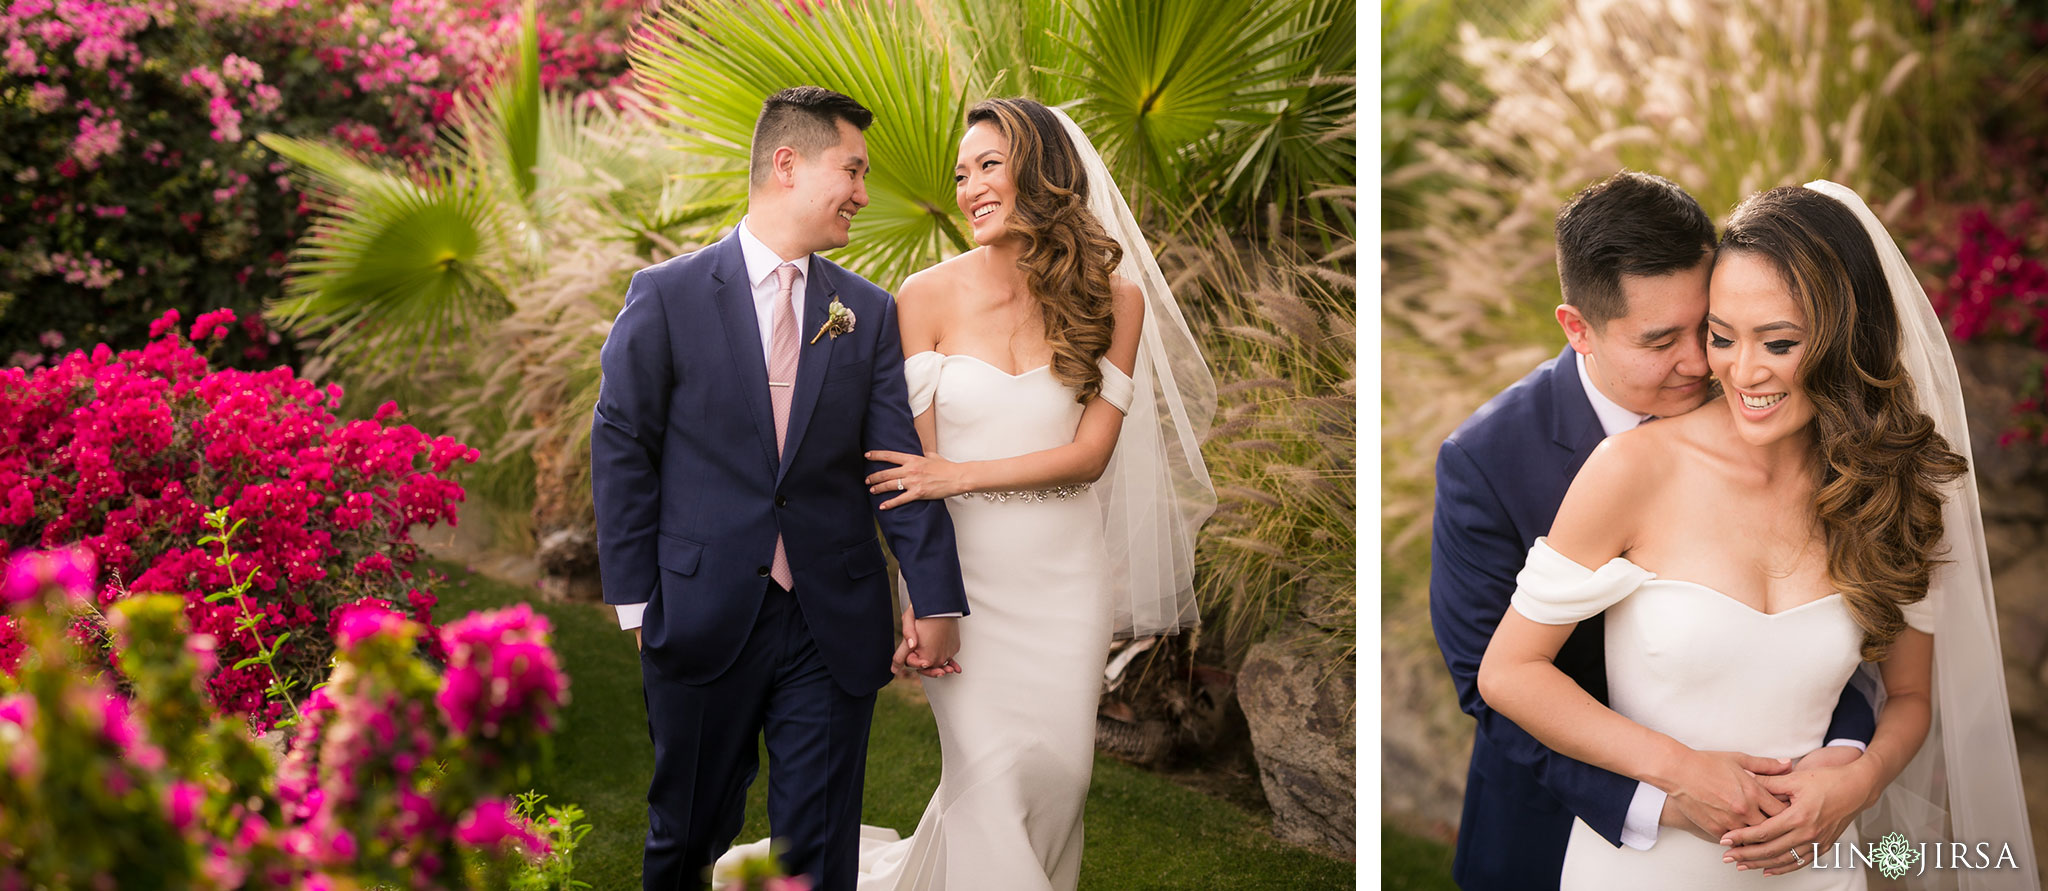 22 odonnell house palm springs wedding photography